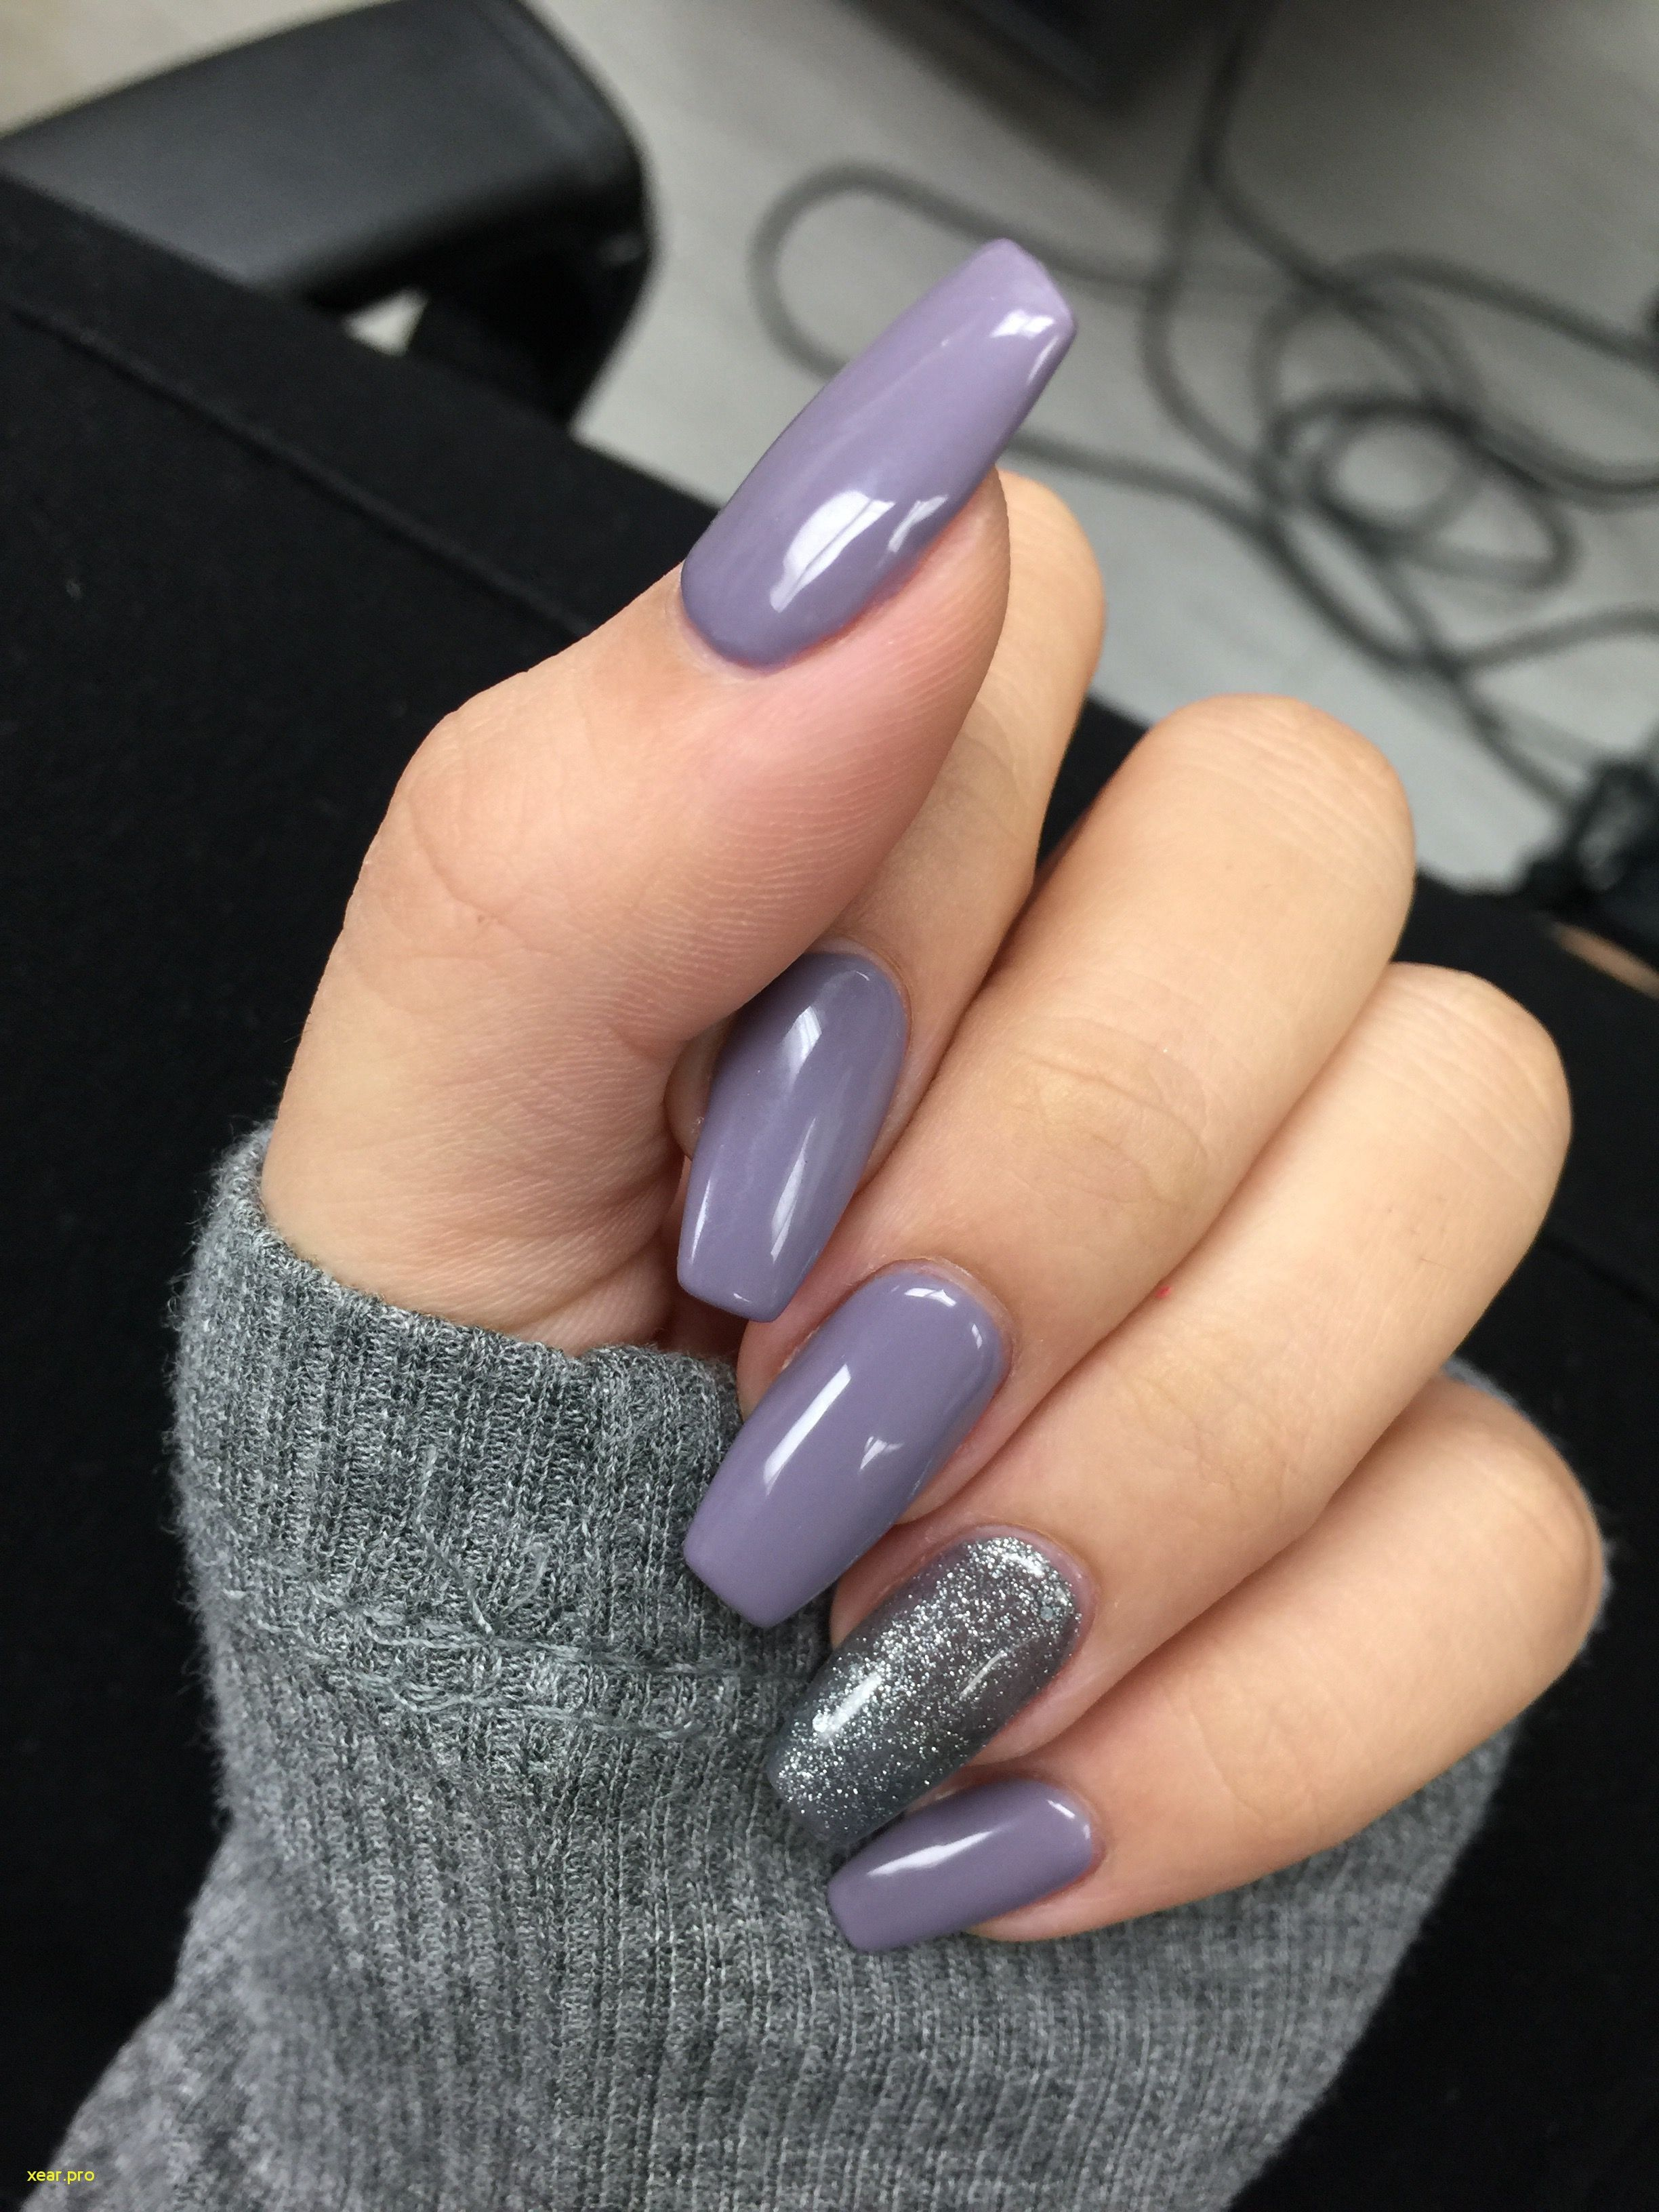 Best Of Matte Mauve Nail Polish Mauve Nails Pink Acrylic Nails Coffin Shape Nails